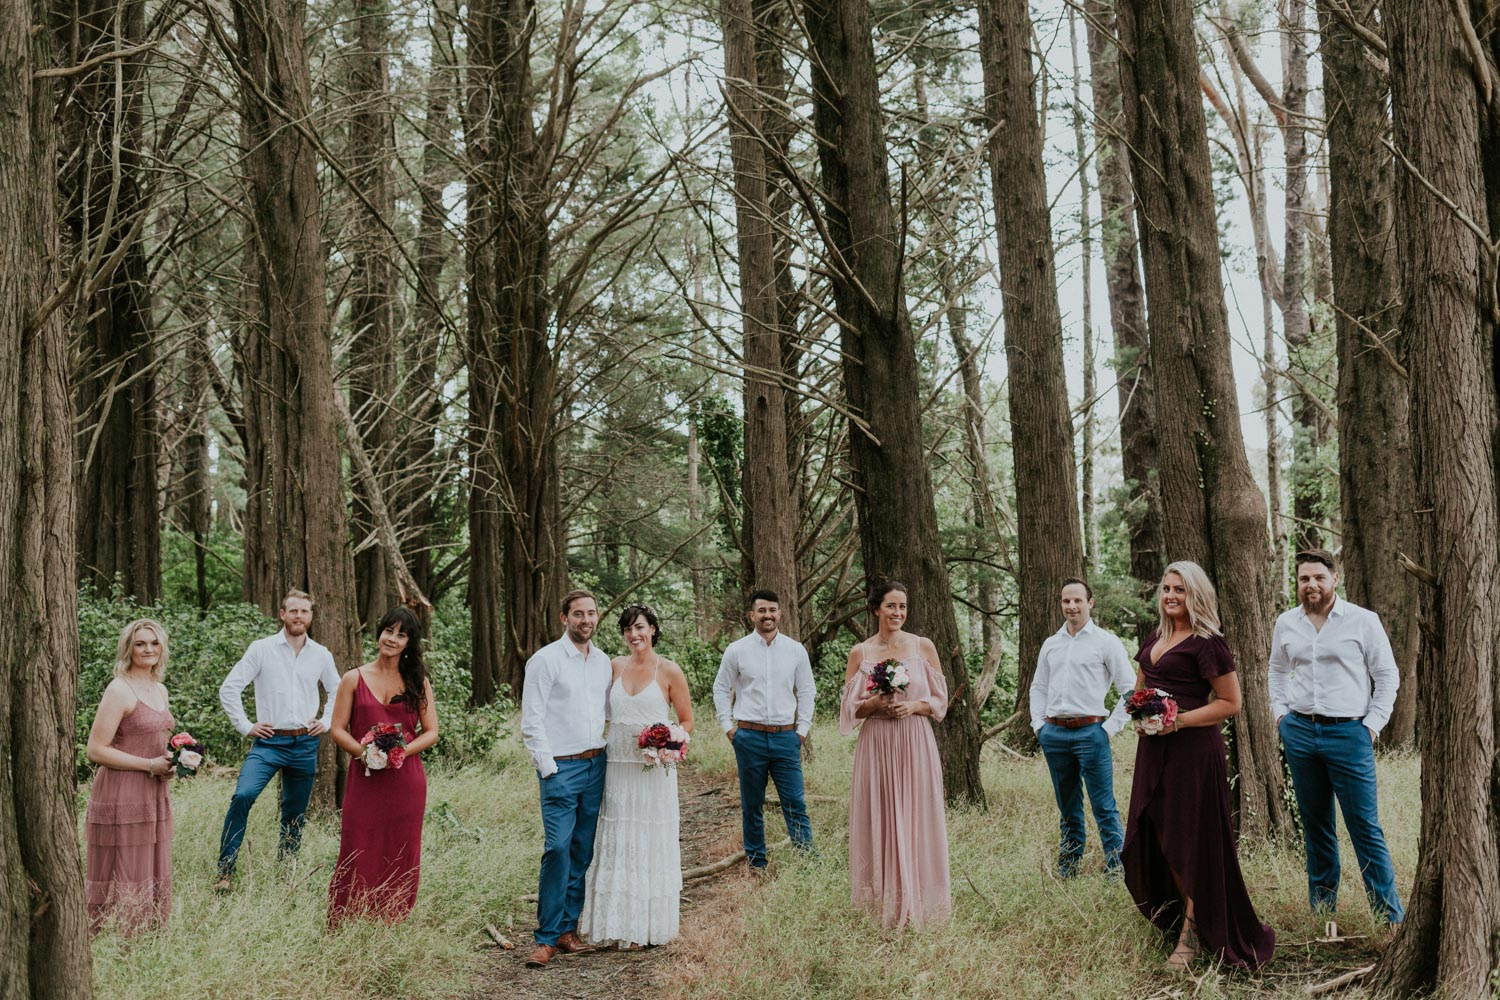 Bridal party photos in a pine forest